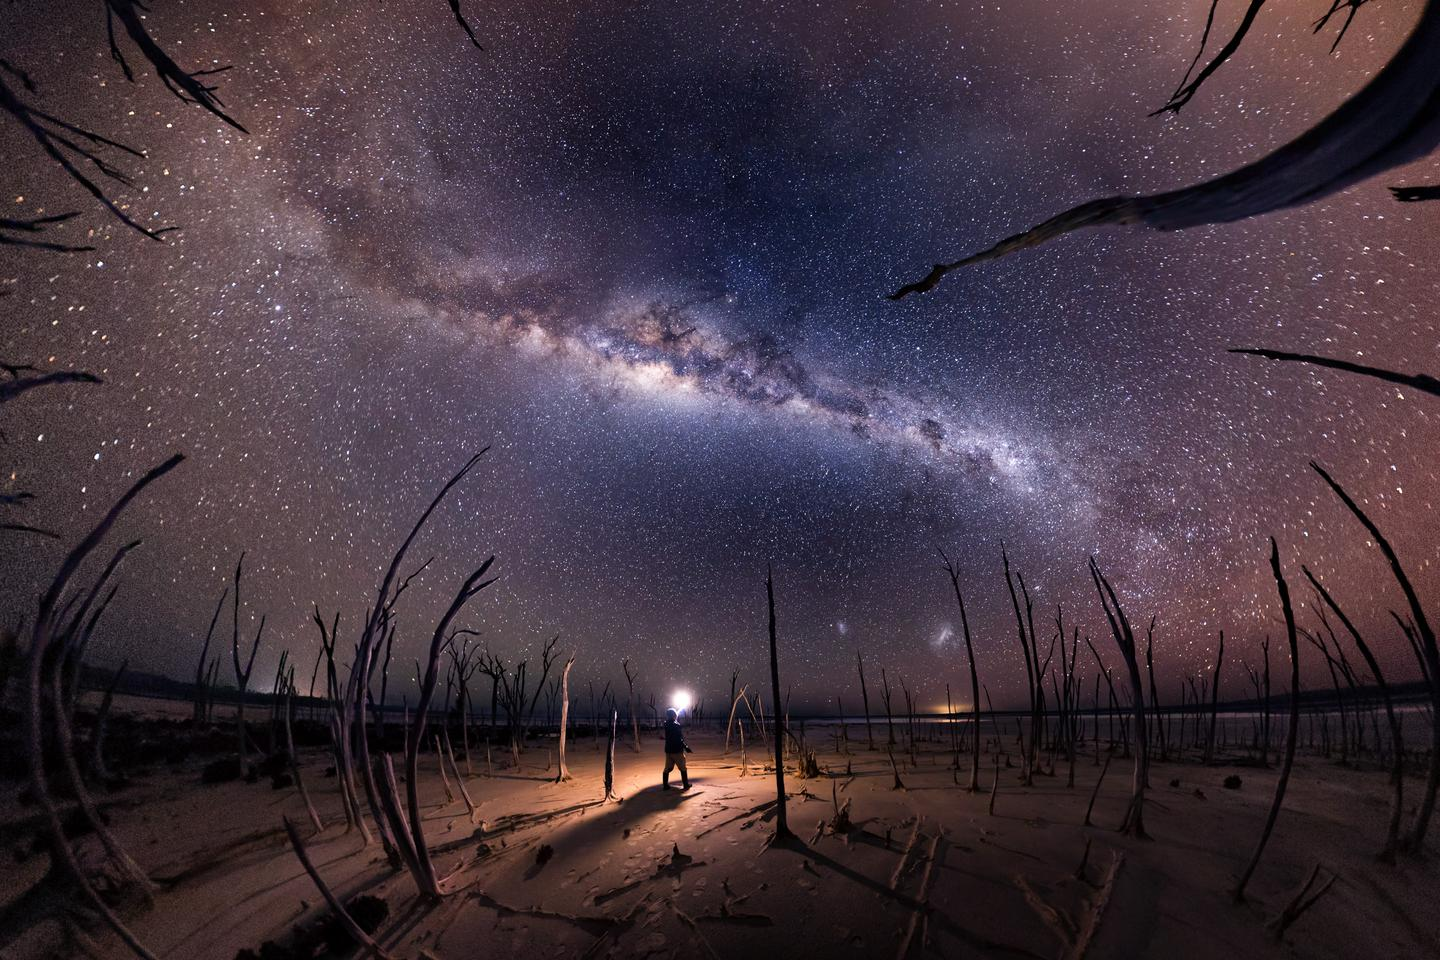 Nightmare, shot in Dumbleyung Lake, Australia. Dead trees reach up towards the Milky Way, surrounding a lone figure with a light.